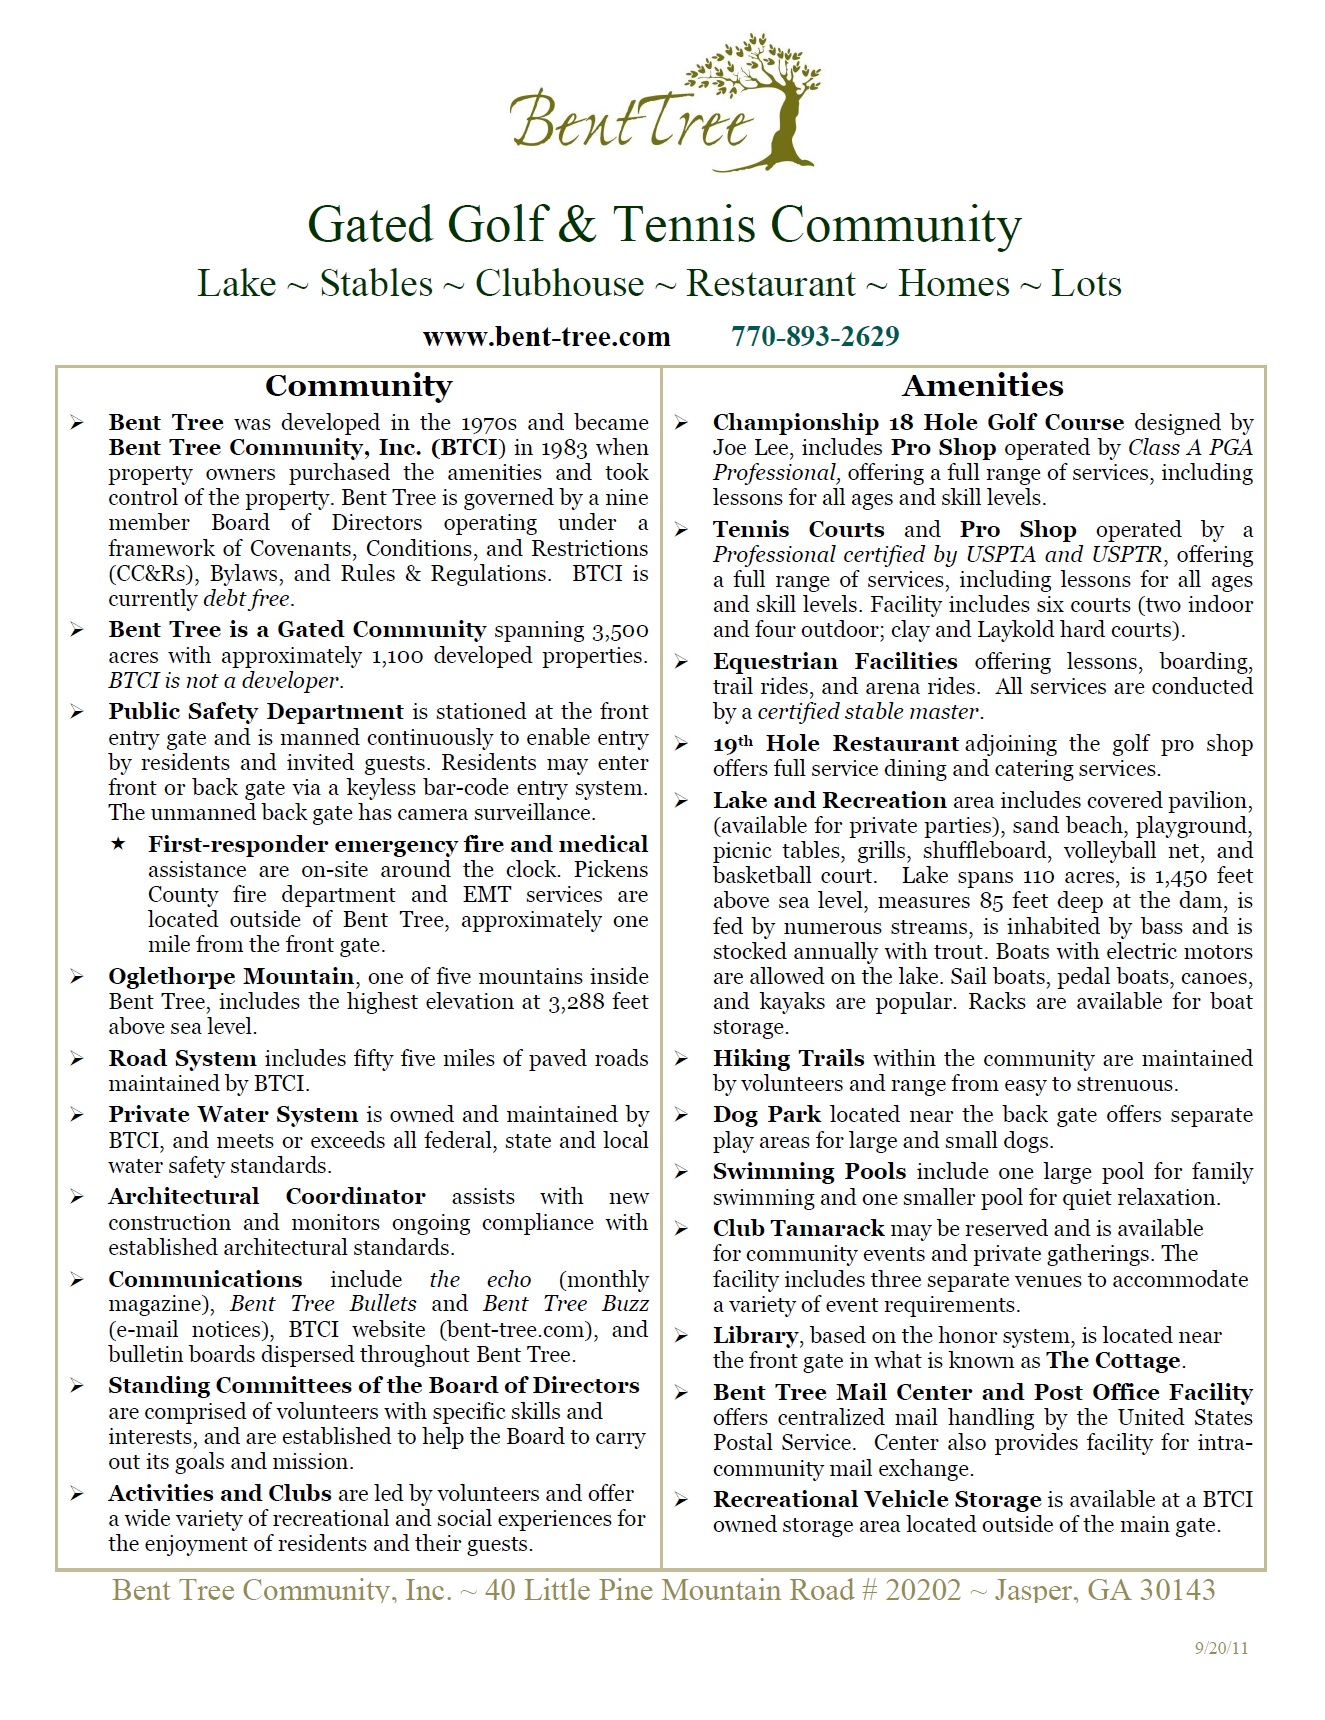 2011 Bent Tree Fact Sheet